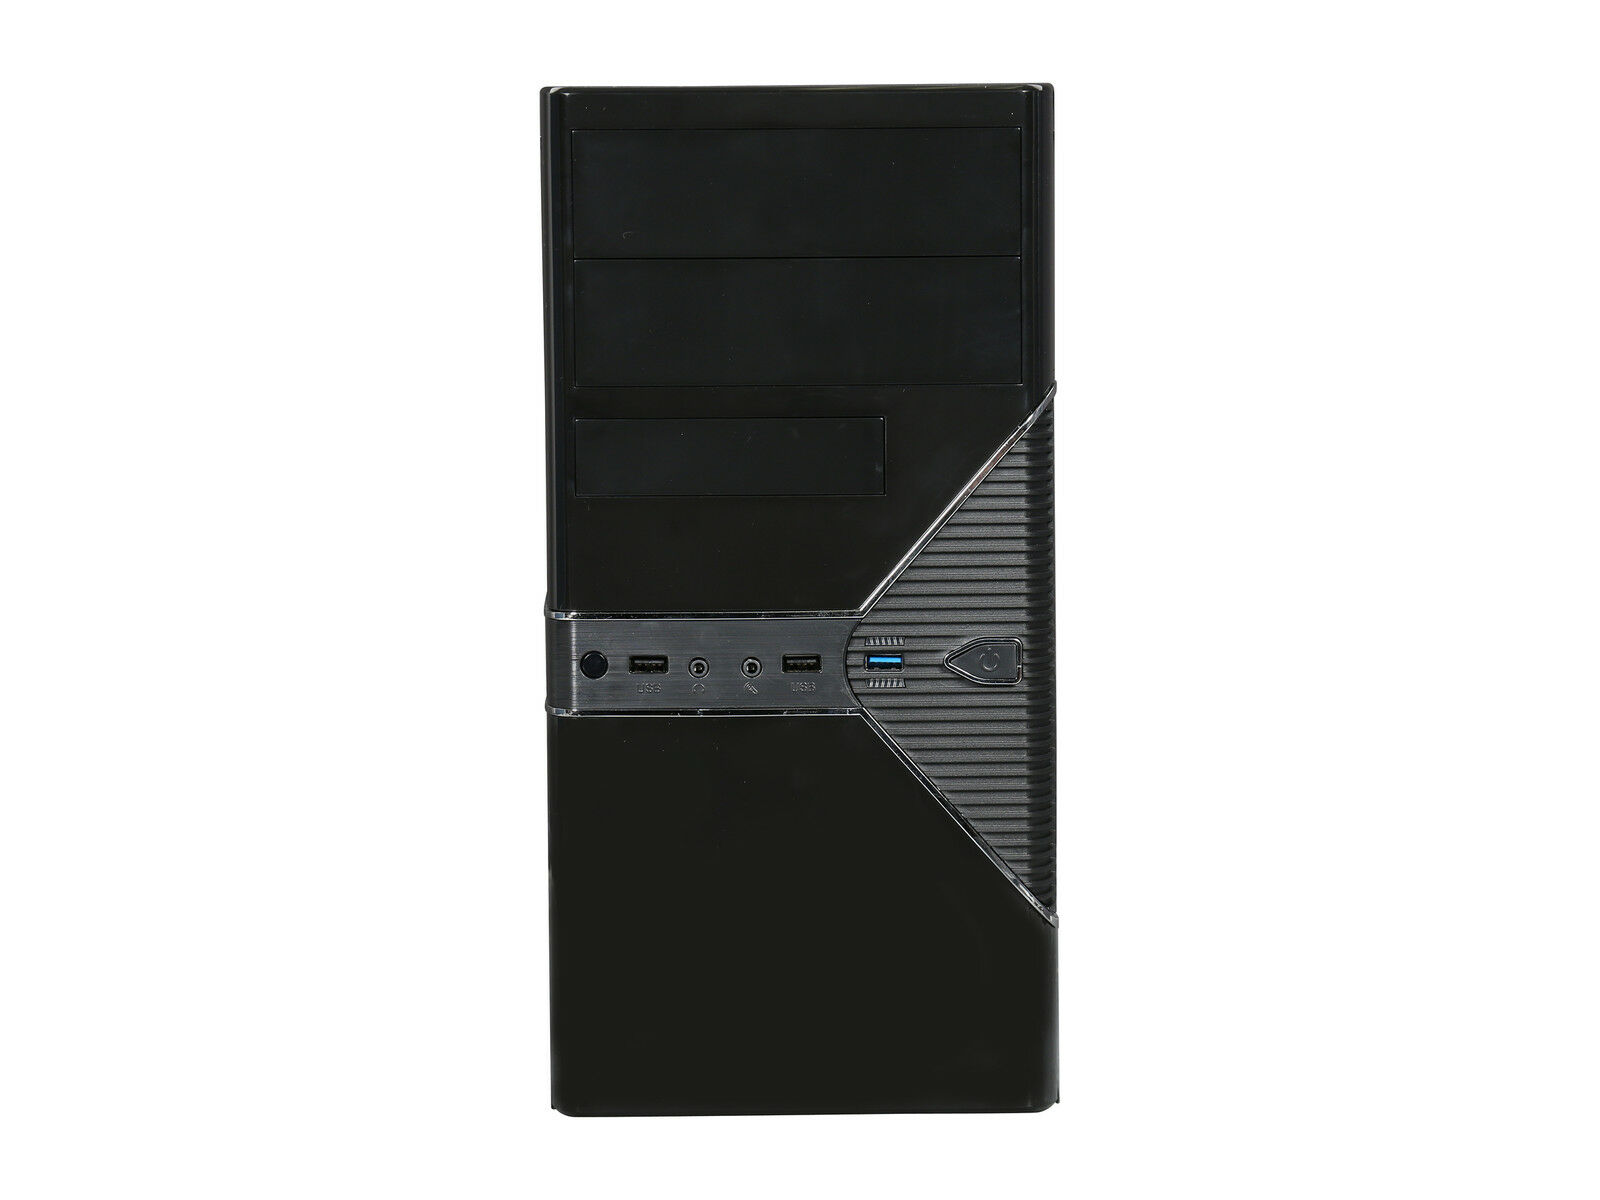 Rosewill Black Computer PC Case, Micro ATX Mini Tower, Dual Fans USB 3.0, FBM-05